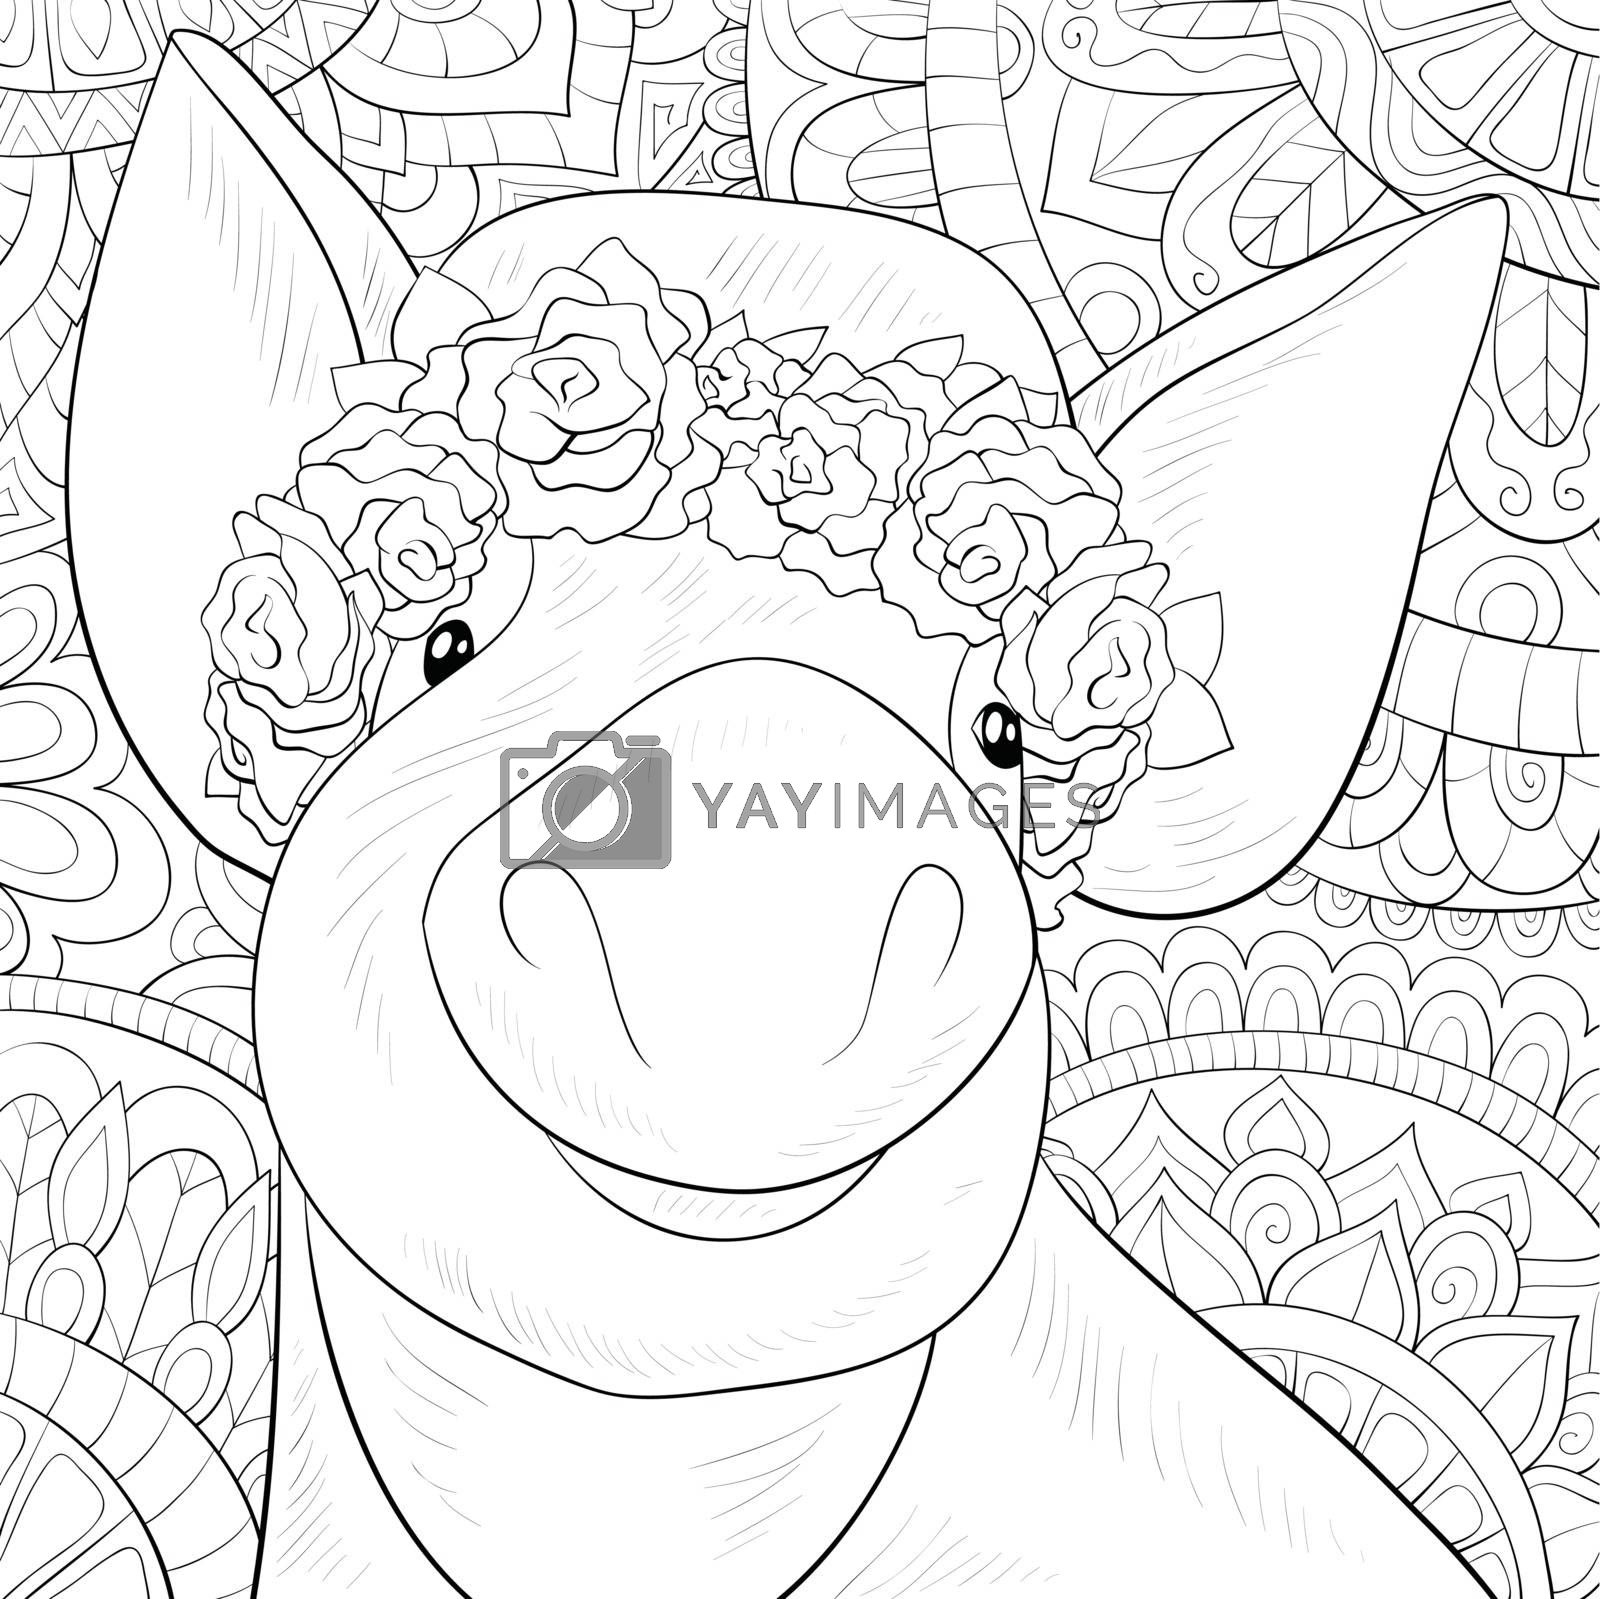 Adult coloring book,page a cute pig wearing a hat with rosses on by Nonuzza